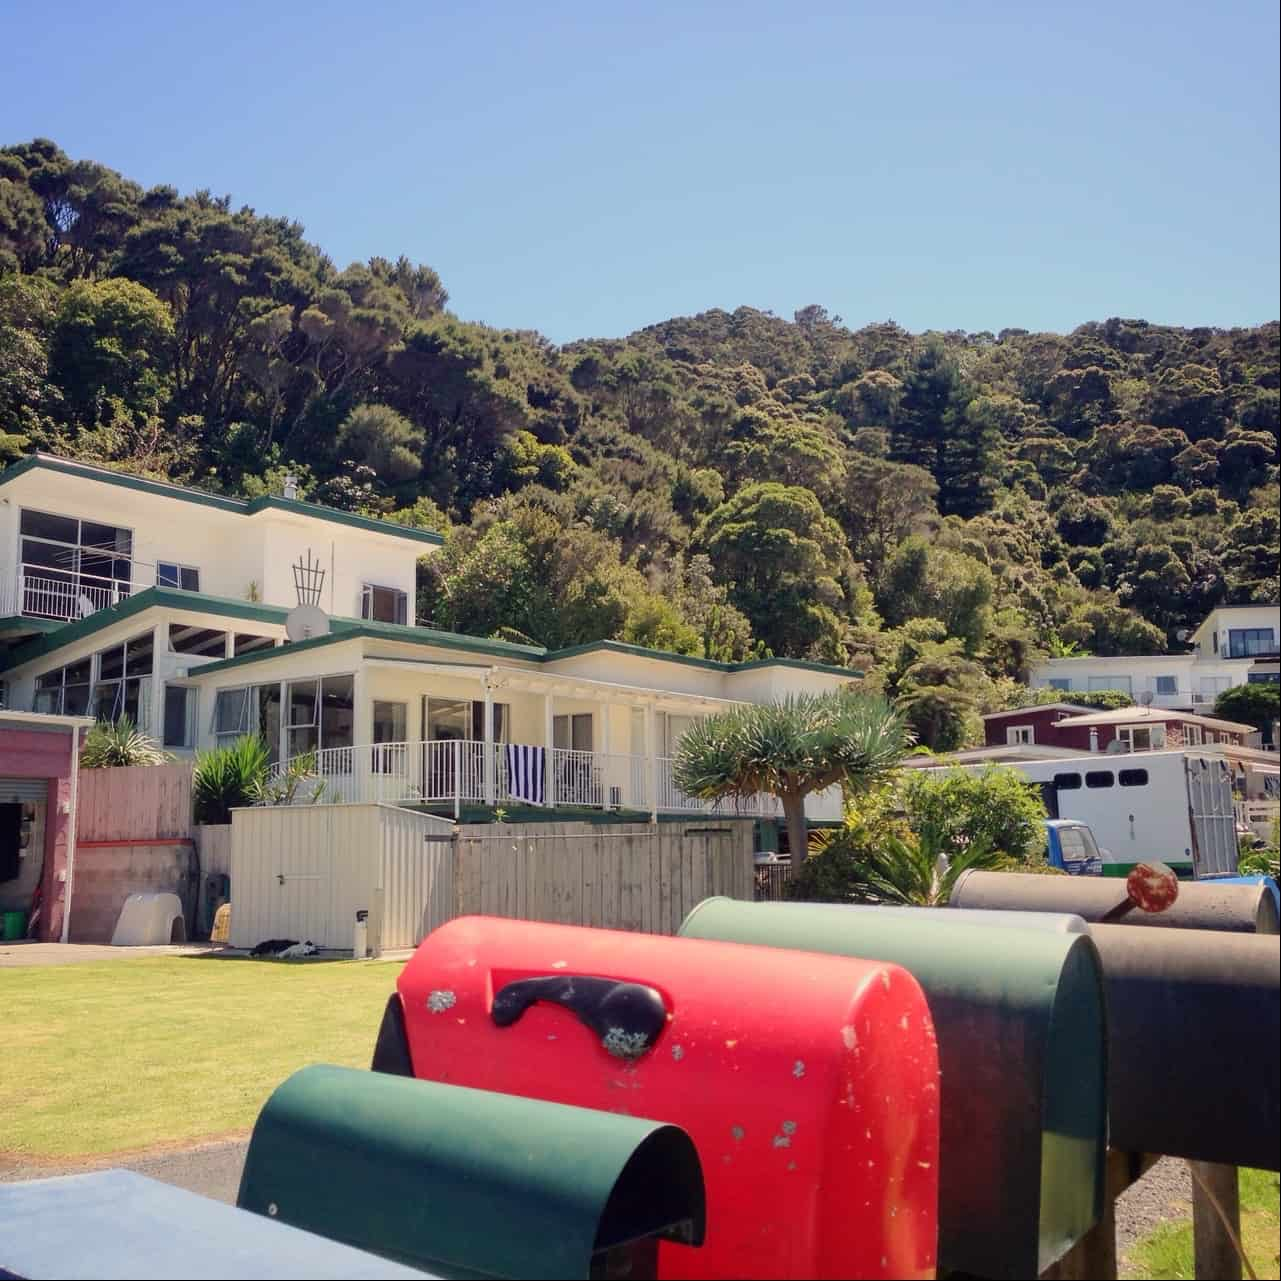 Opito Bay is a typical kiwi seaside settlement, with traditional baches (holiday homes).